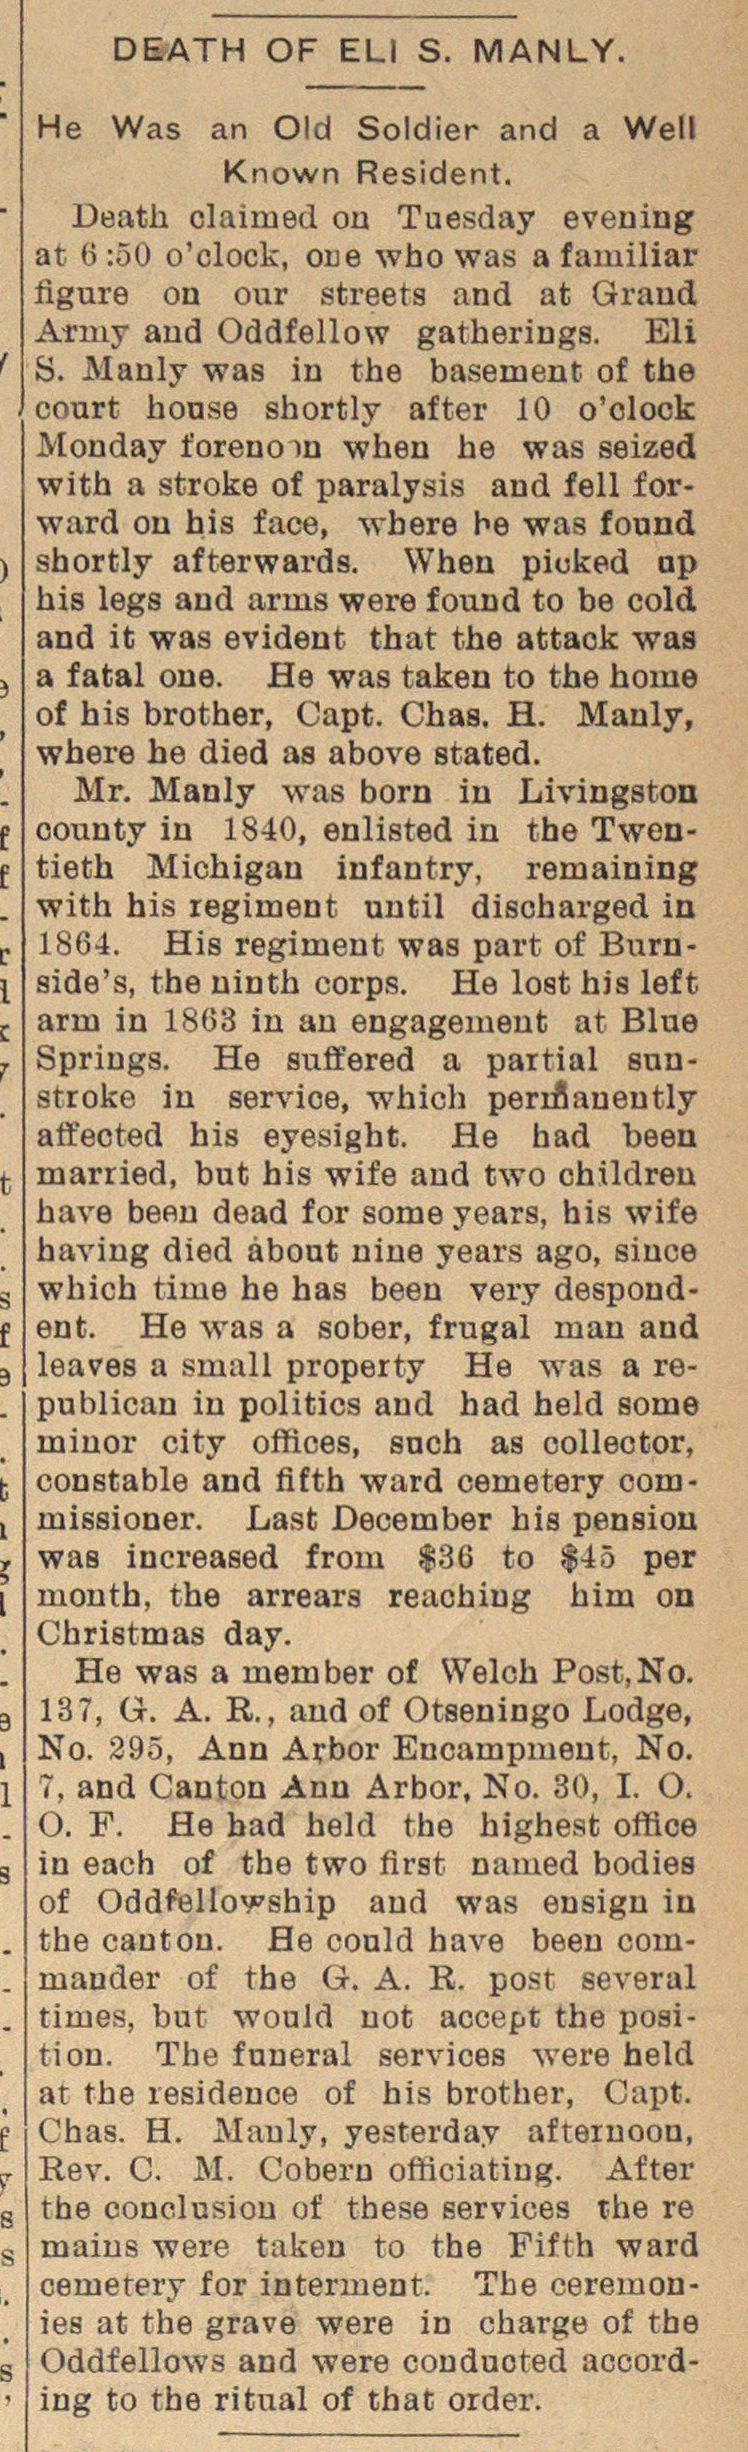 Death Of Eli S. Manly image